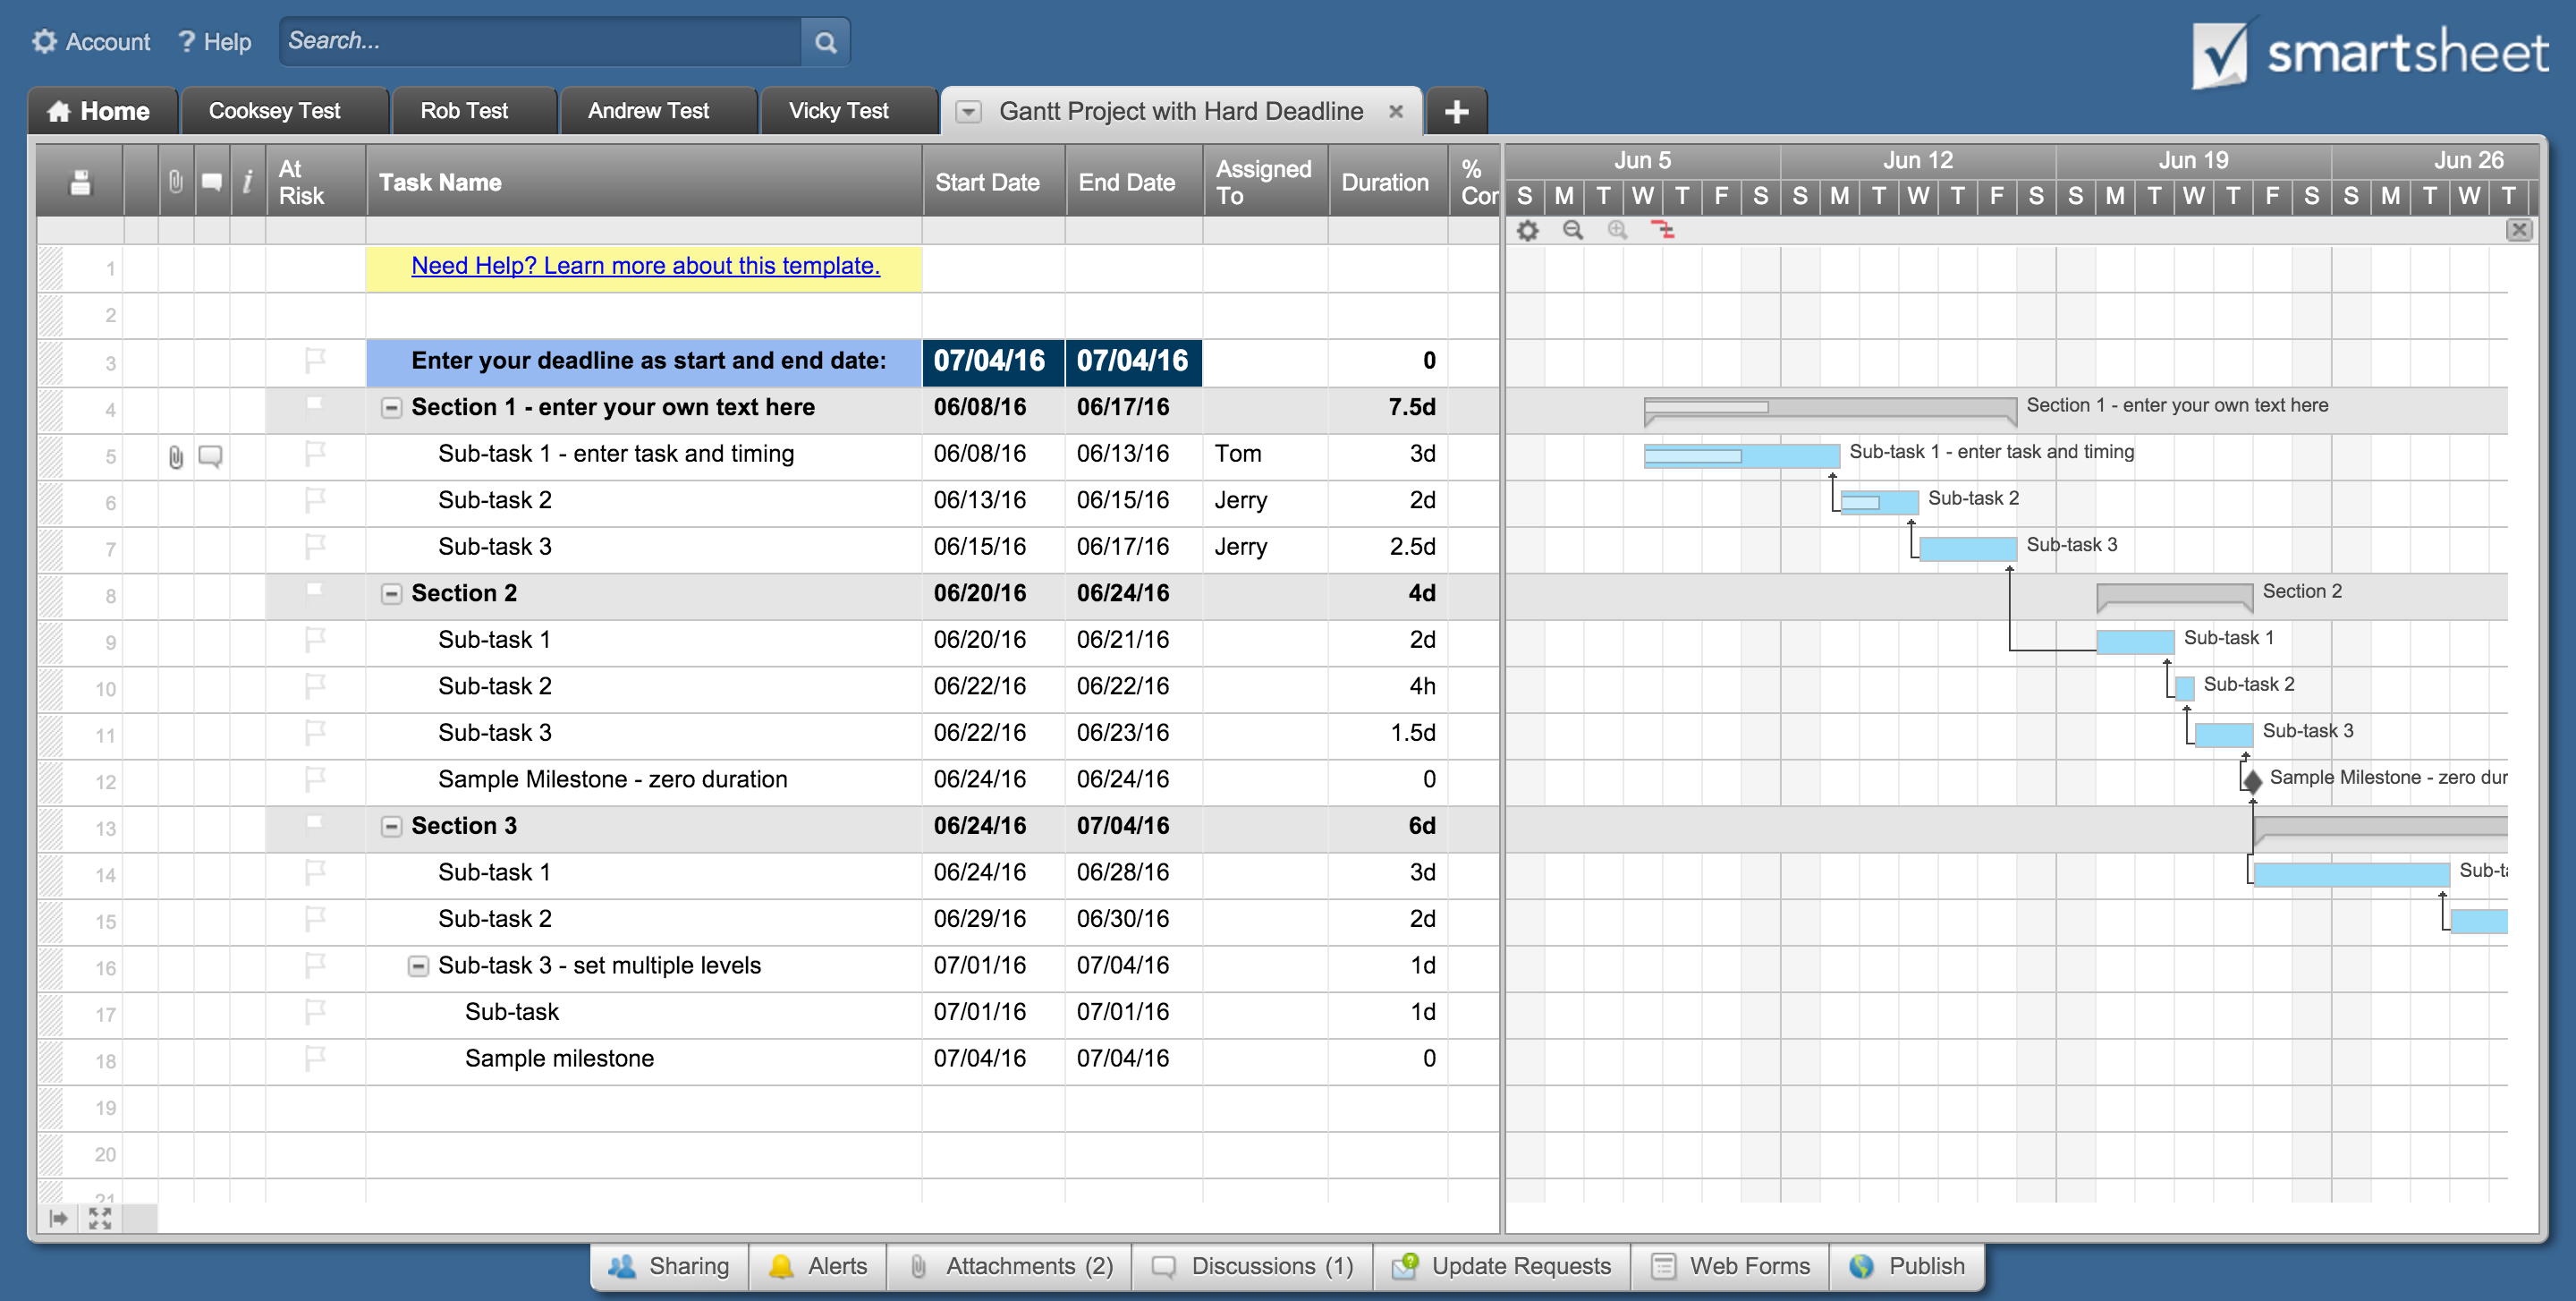 Free Spreadsheet Software For Windows Intended For Free Spreadsheet Program For Windows 8 Best Budget Spreadsheet Excel